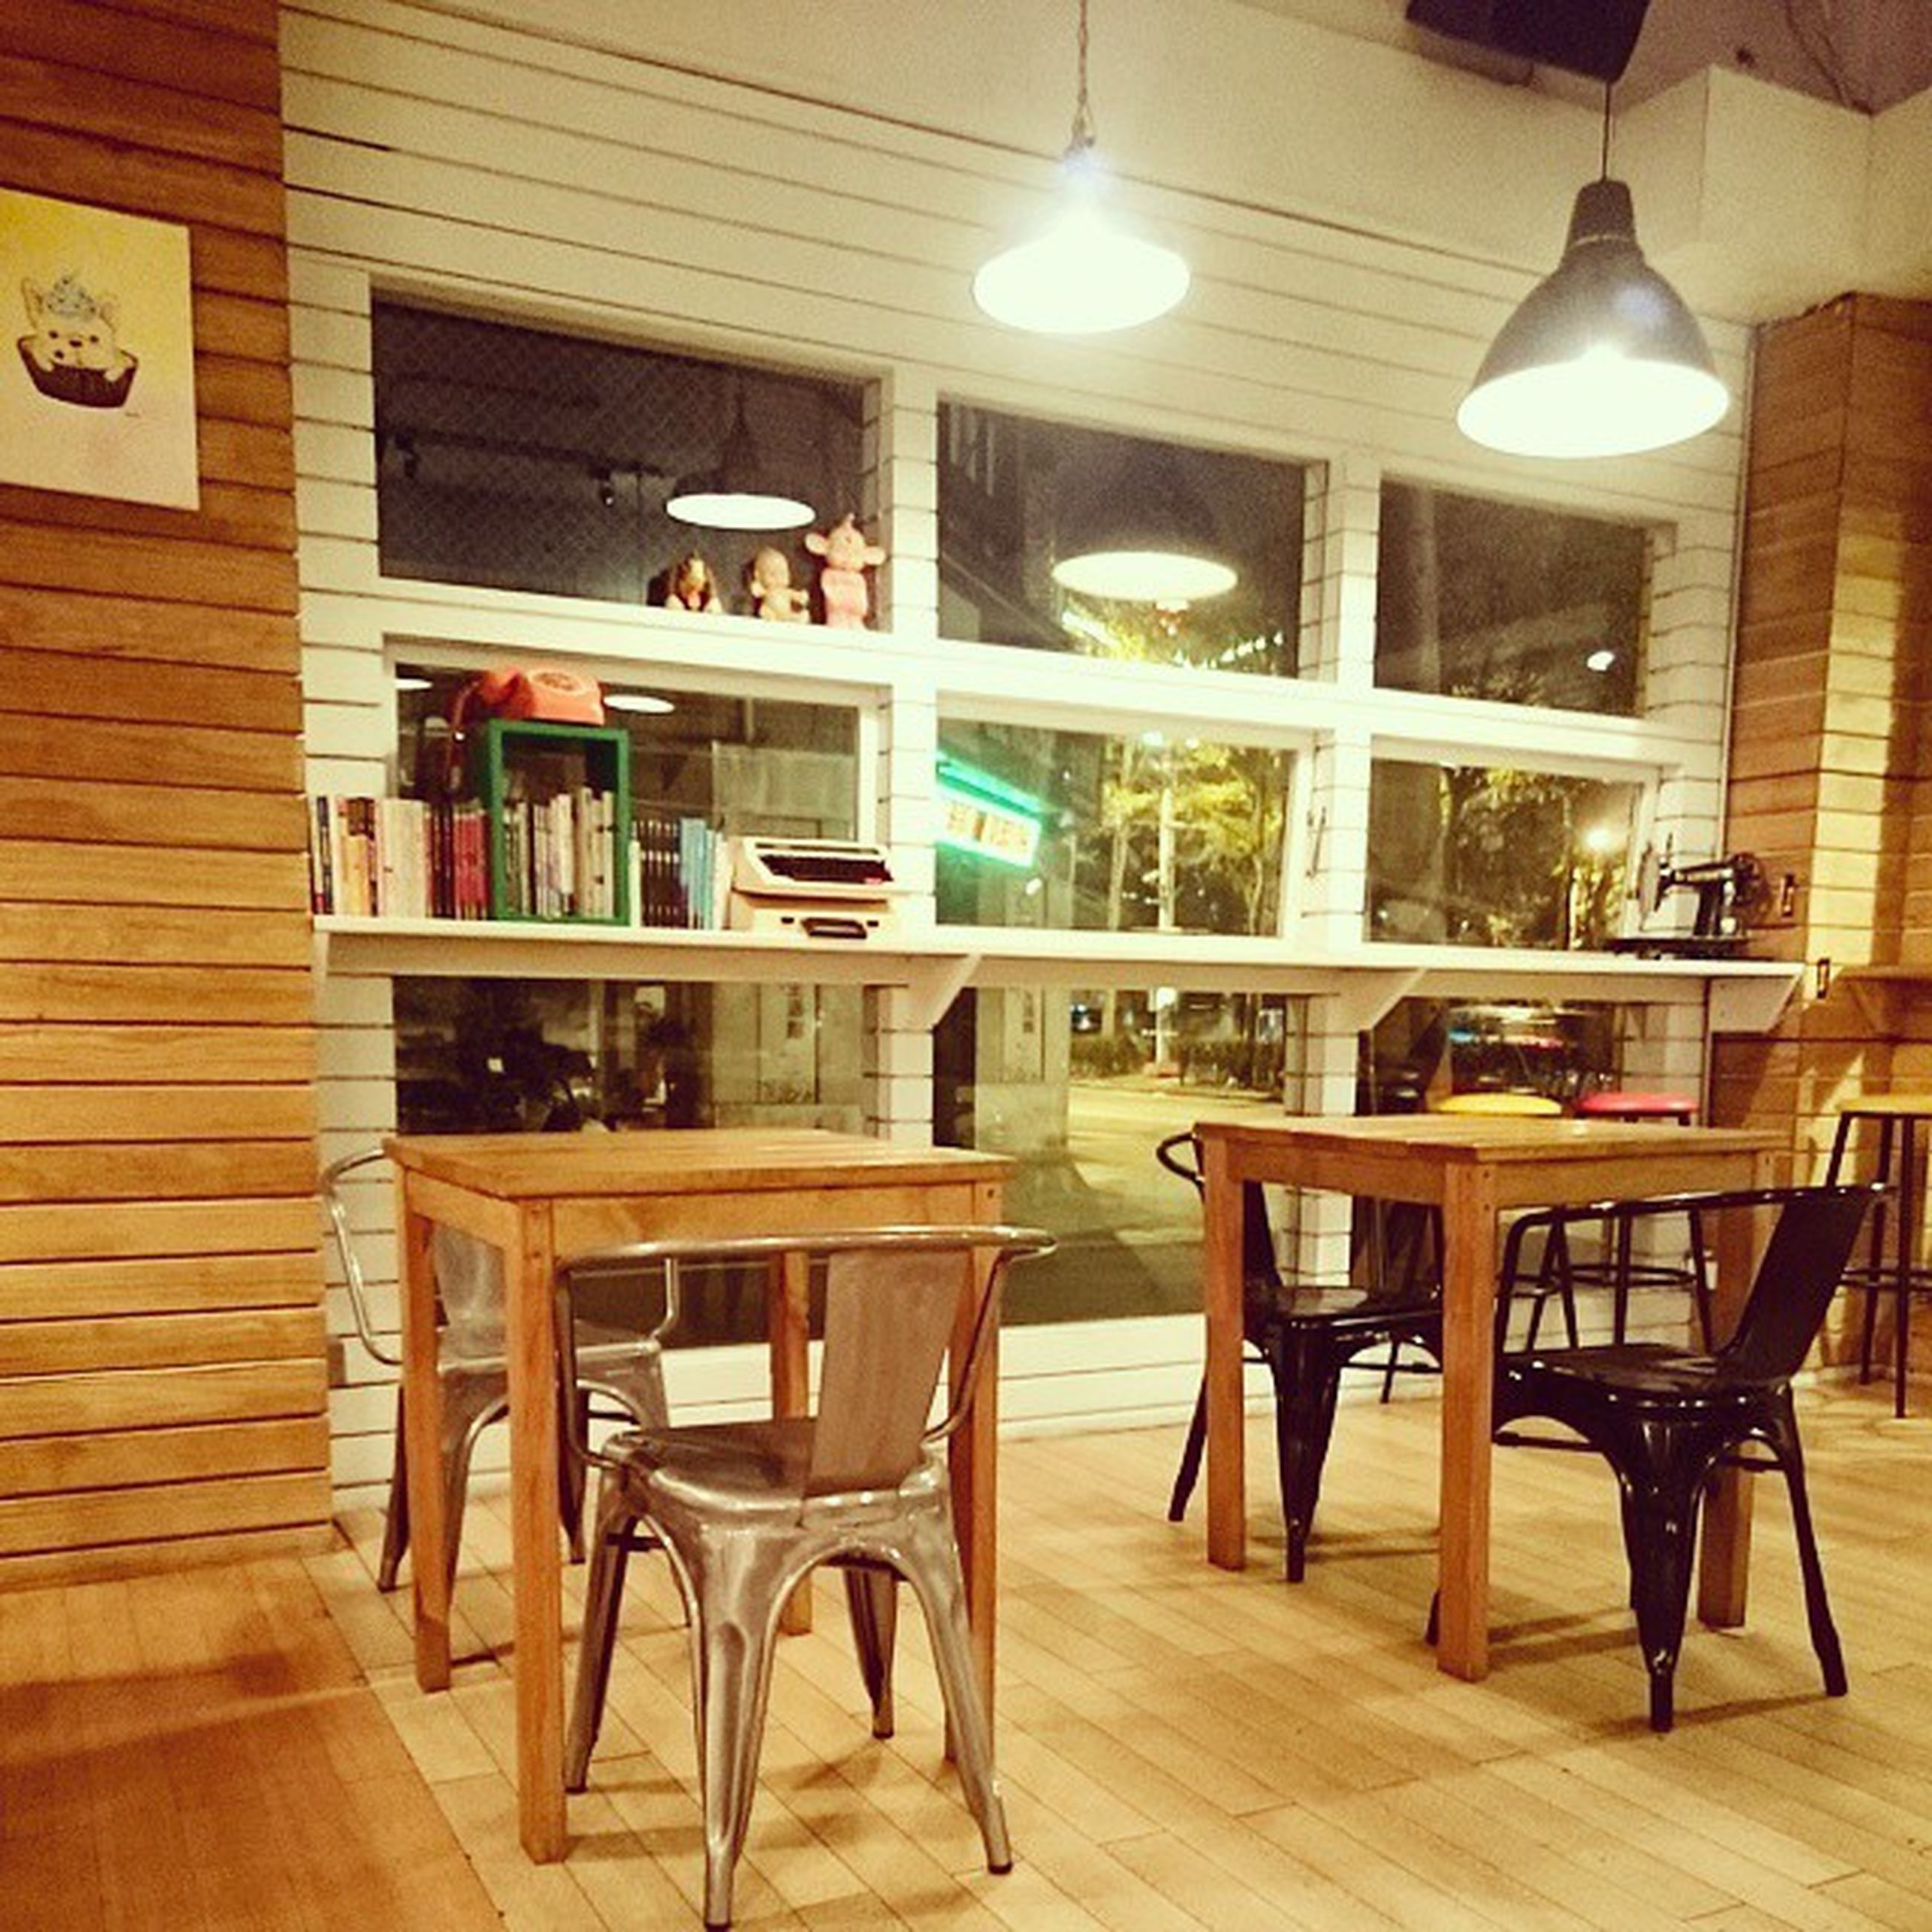 indoors, table, chair, empty, absence, restaurant, illuminated, furniture, place setting, arrangement, lighting equipment, electric lamp, cafe, window, home interior, architecture, wood - material, dining table, built structure, no people